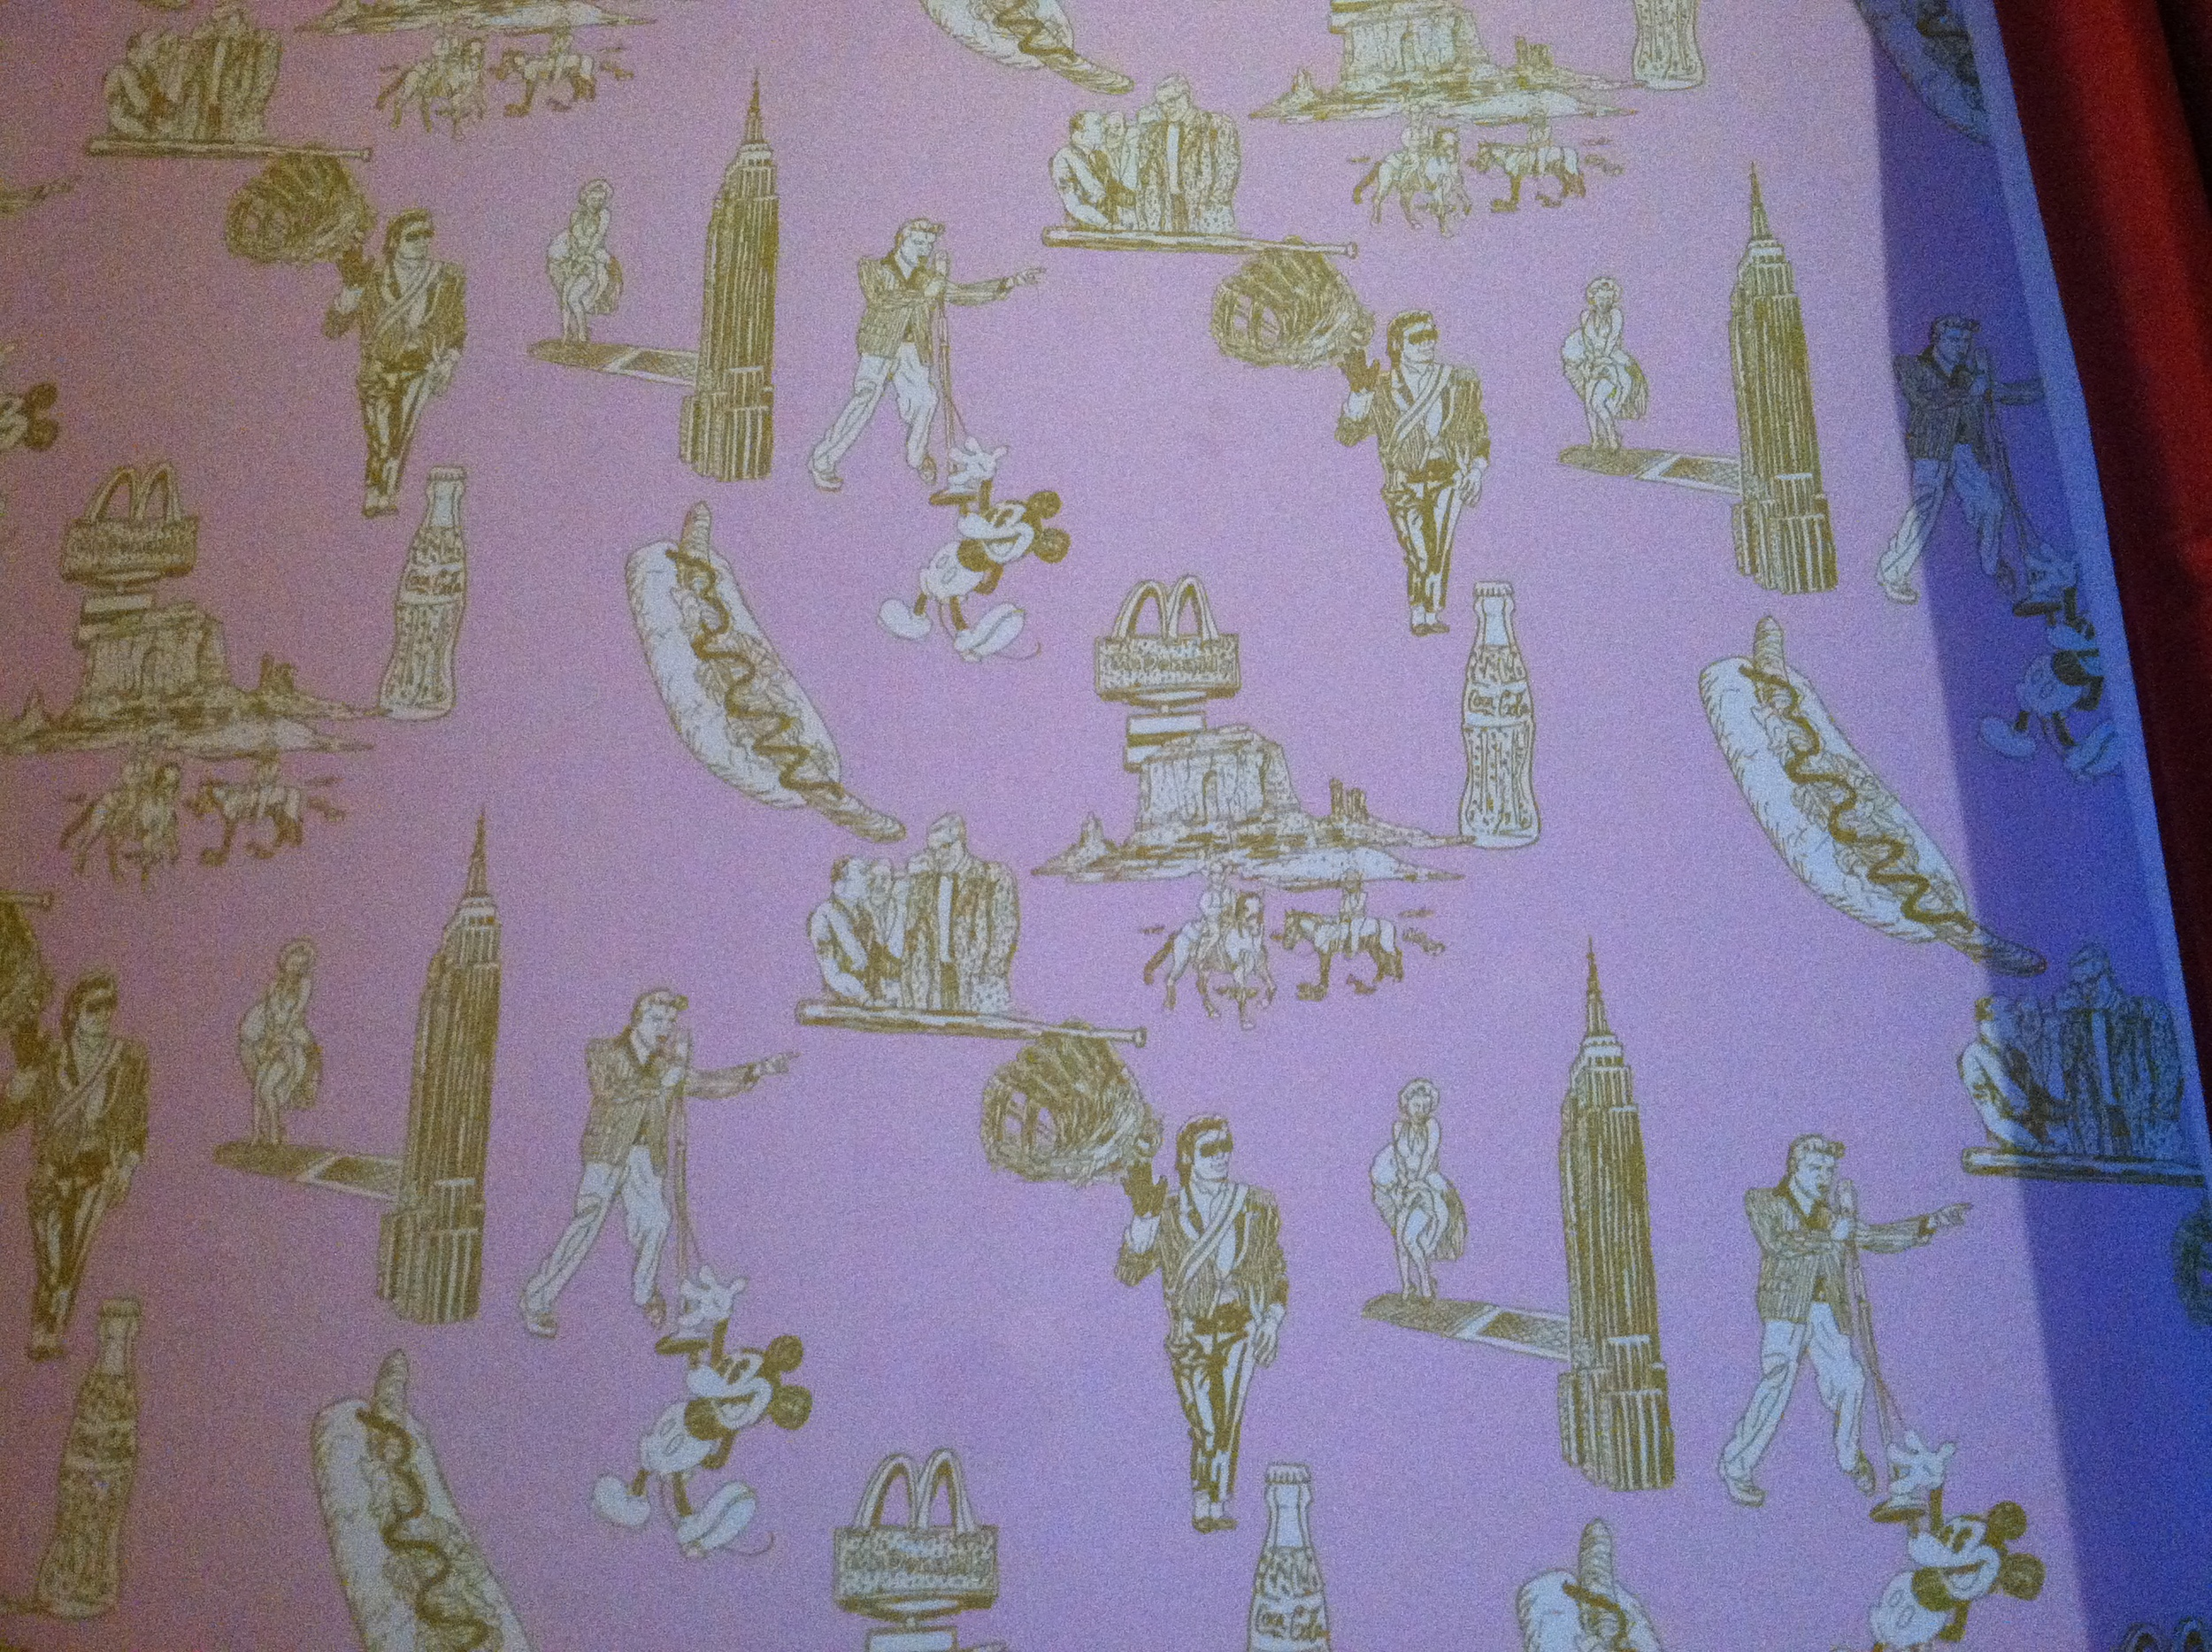 A close up pic of the pop art toile wallpaper in exhibit